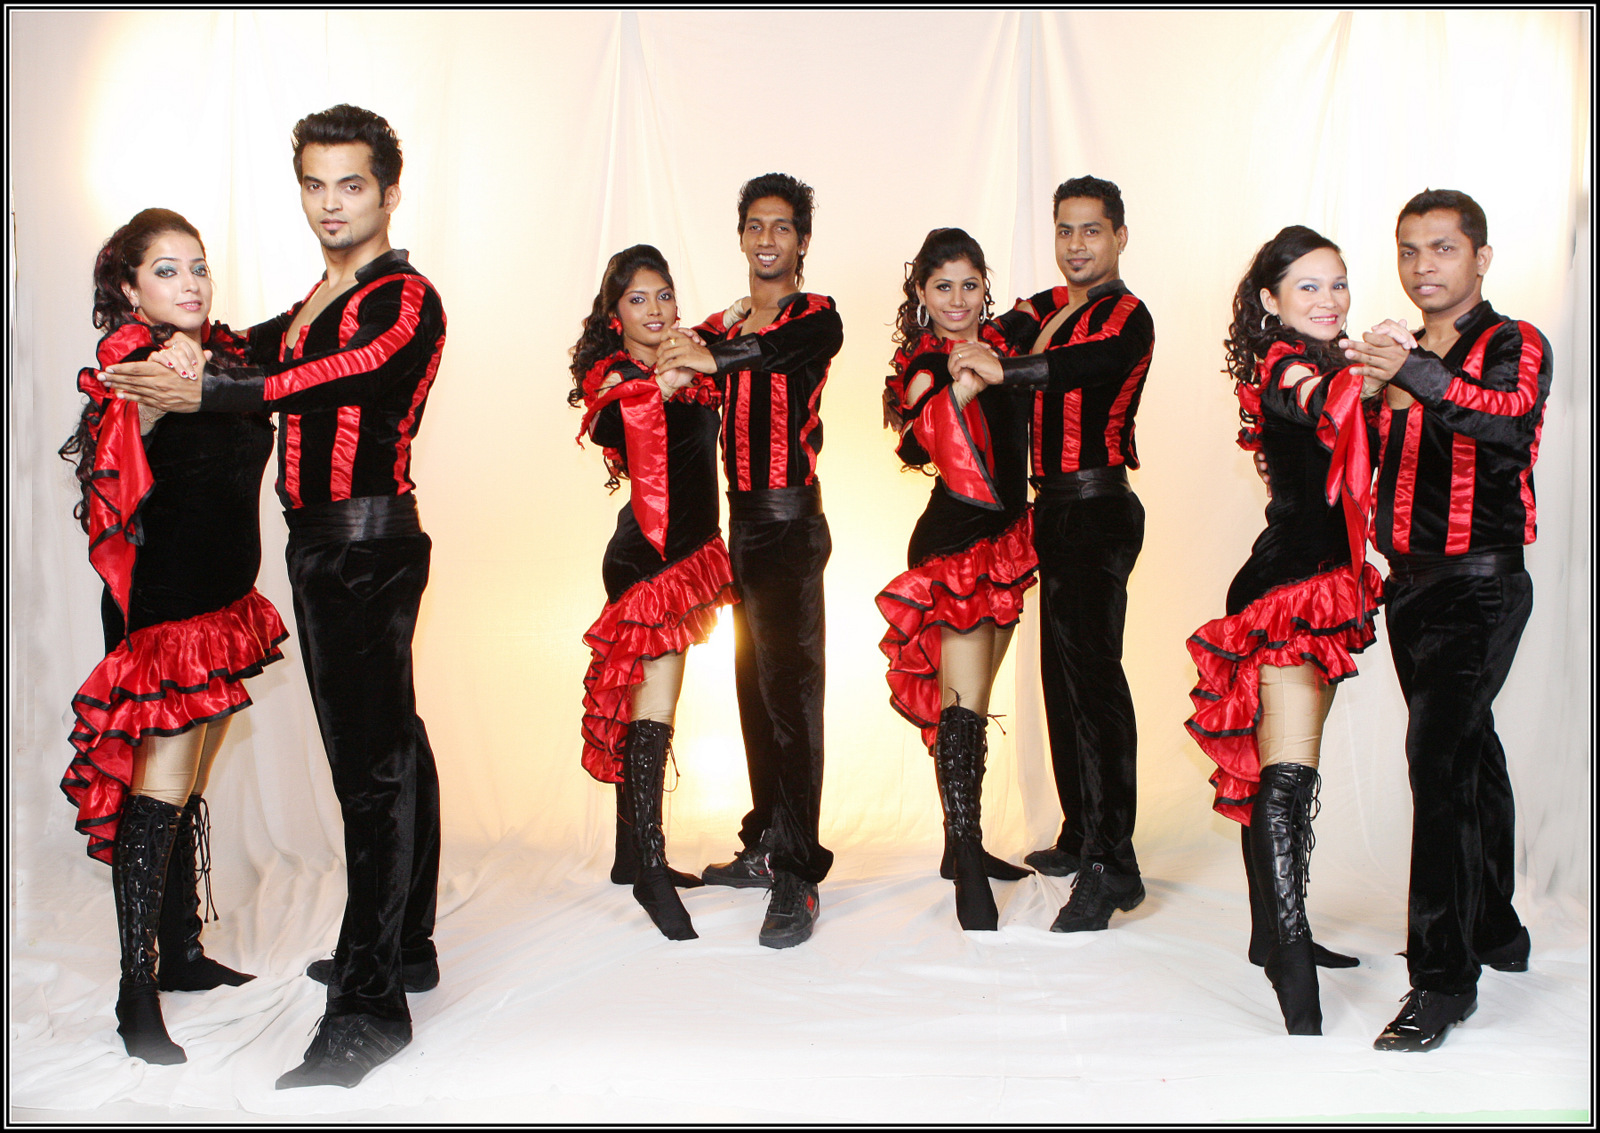 JIVE DANCE CLASSES IN KARAMA, Call now 04 3709676